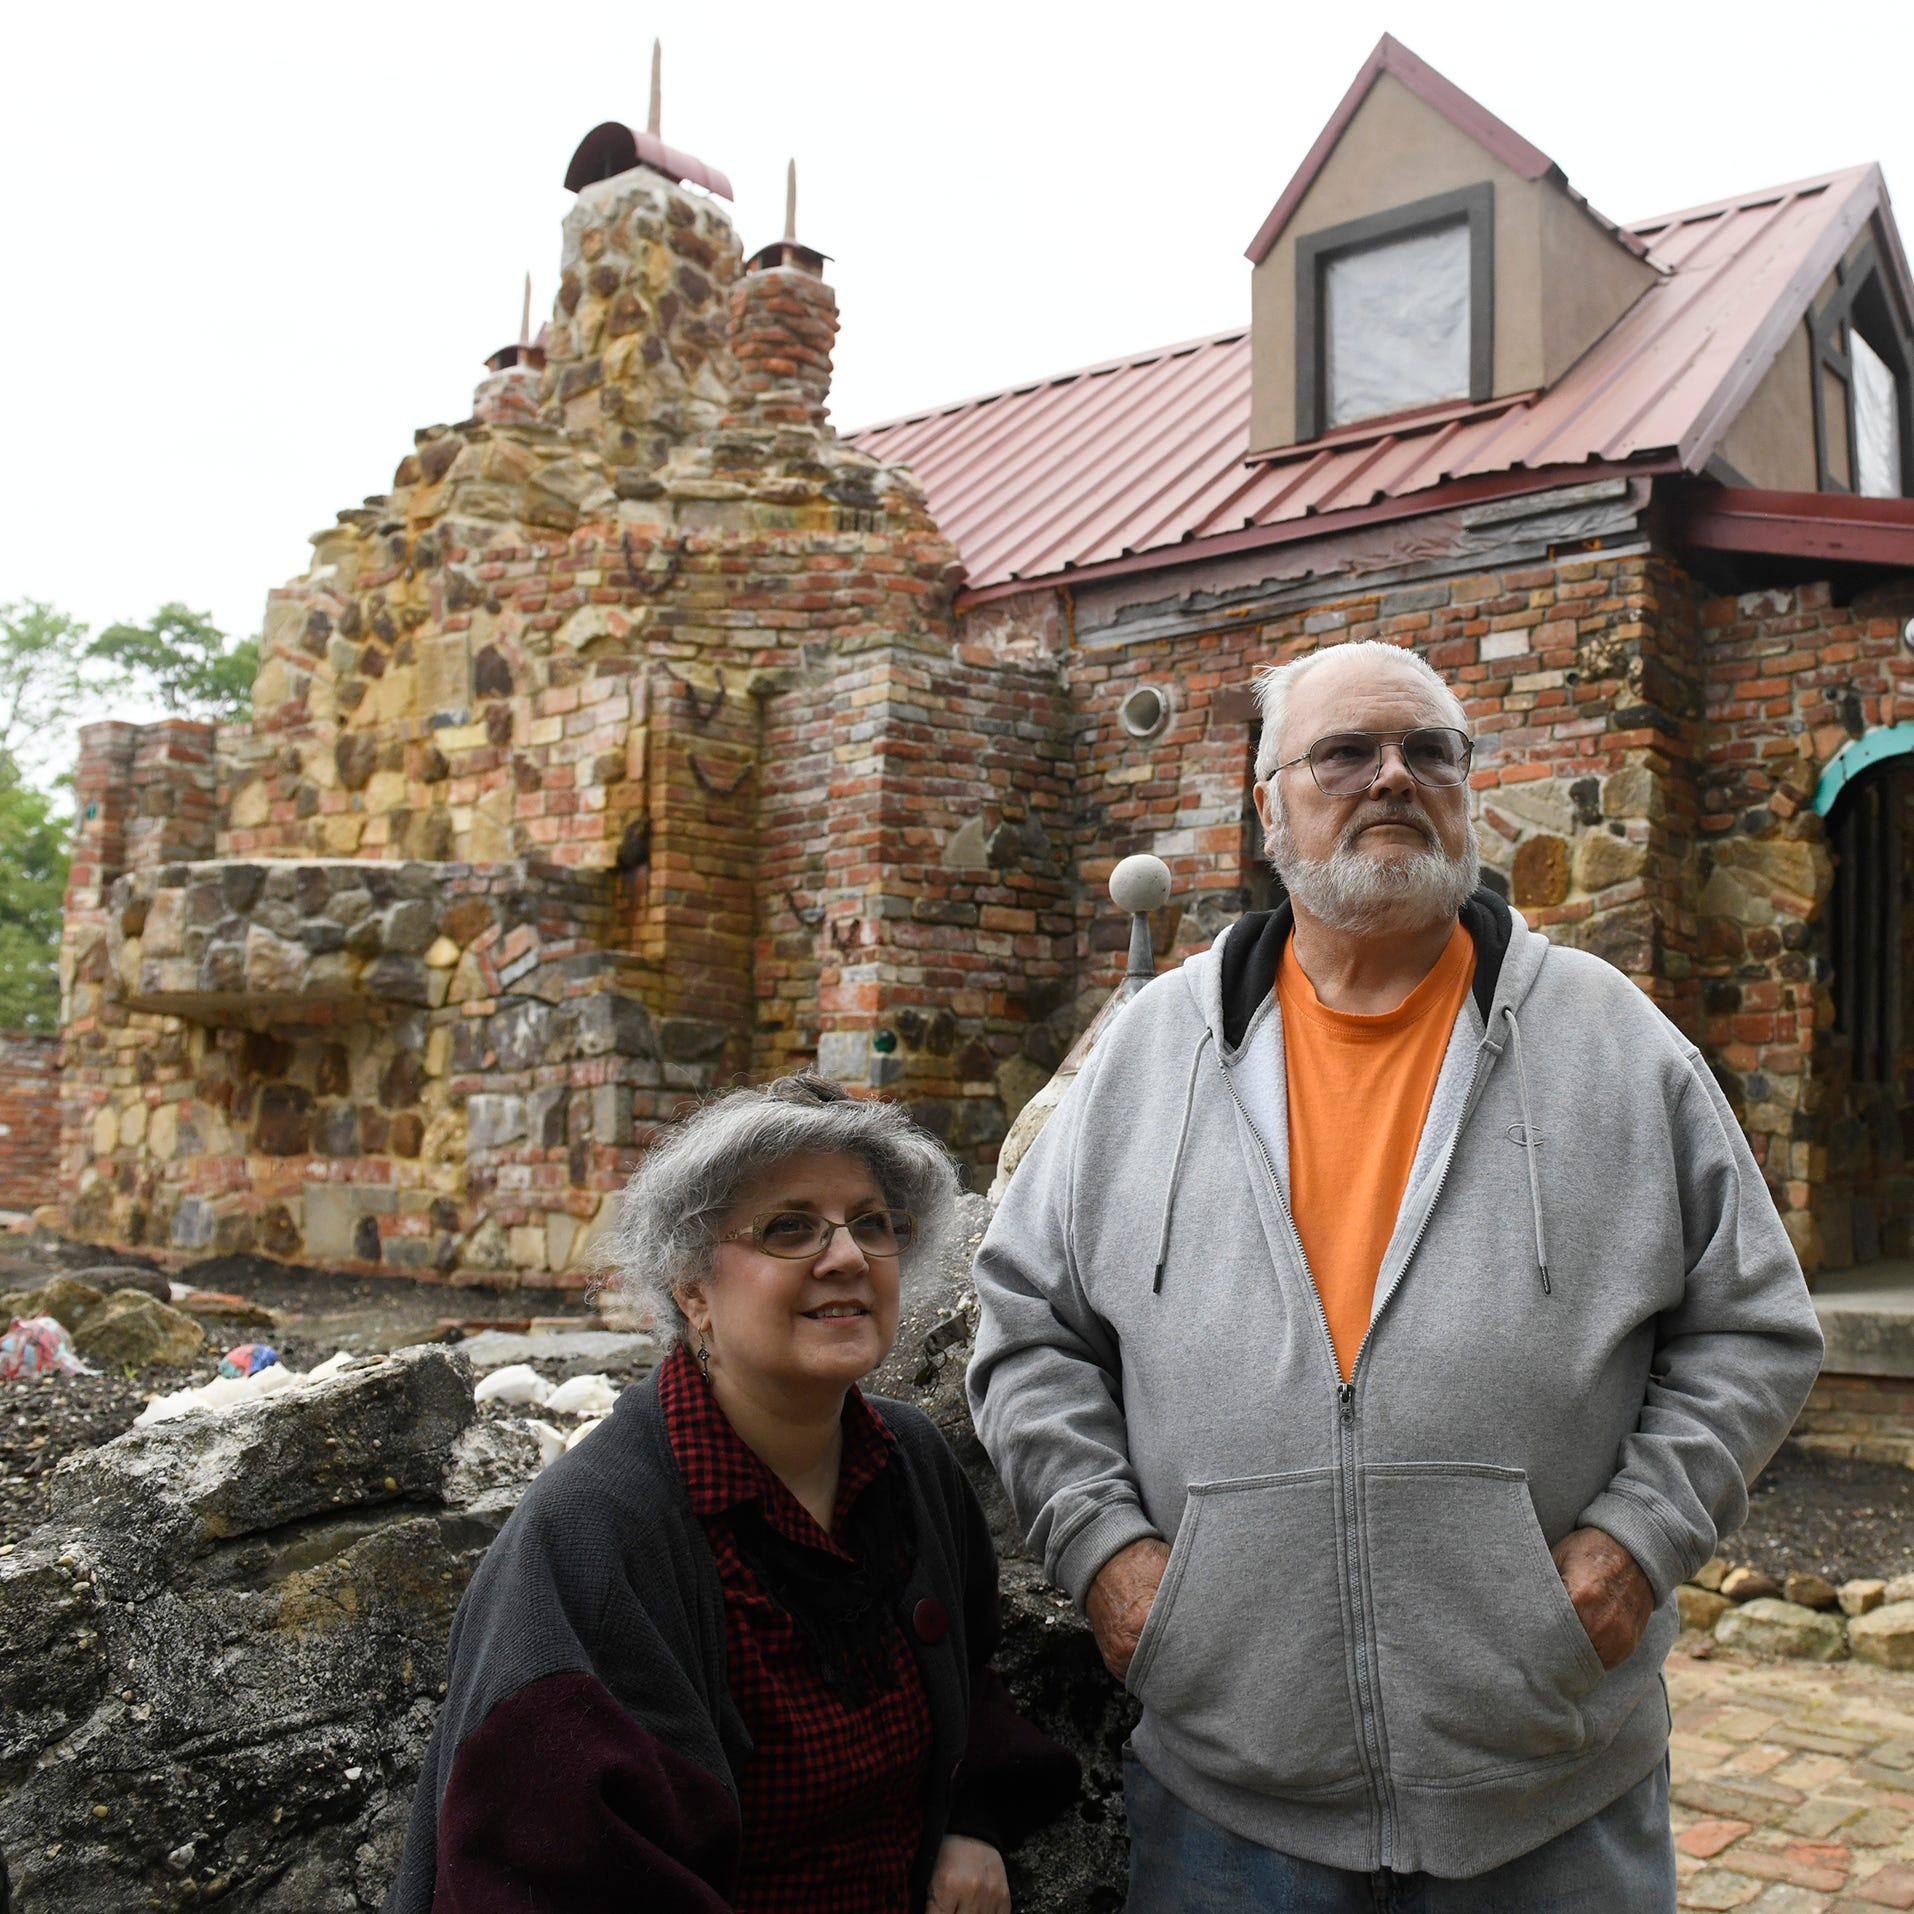 Resurrected Palace of Depression debuts at Vineland Founder's Day